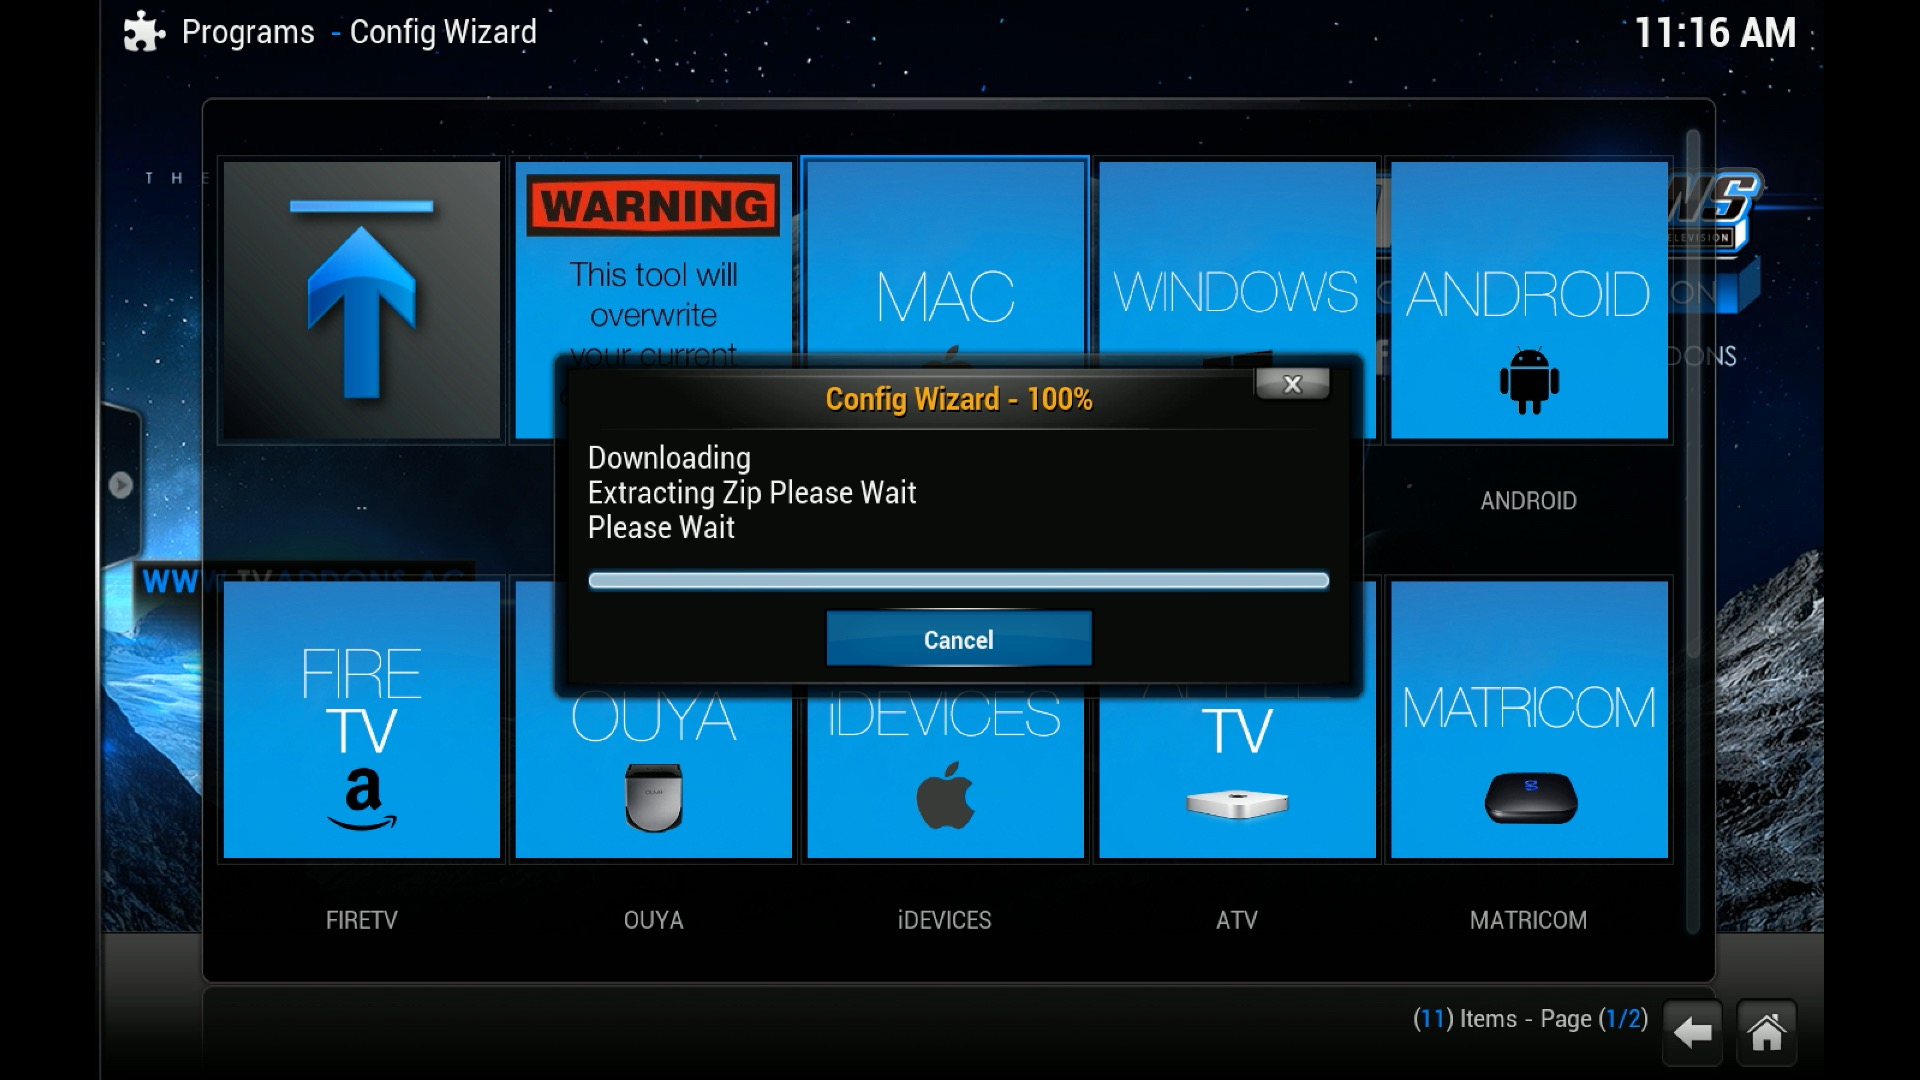 VIDEO – How To Install The 1Channel Add-on In Kodi, (XBMC), For iOS 8 8.1